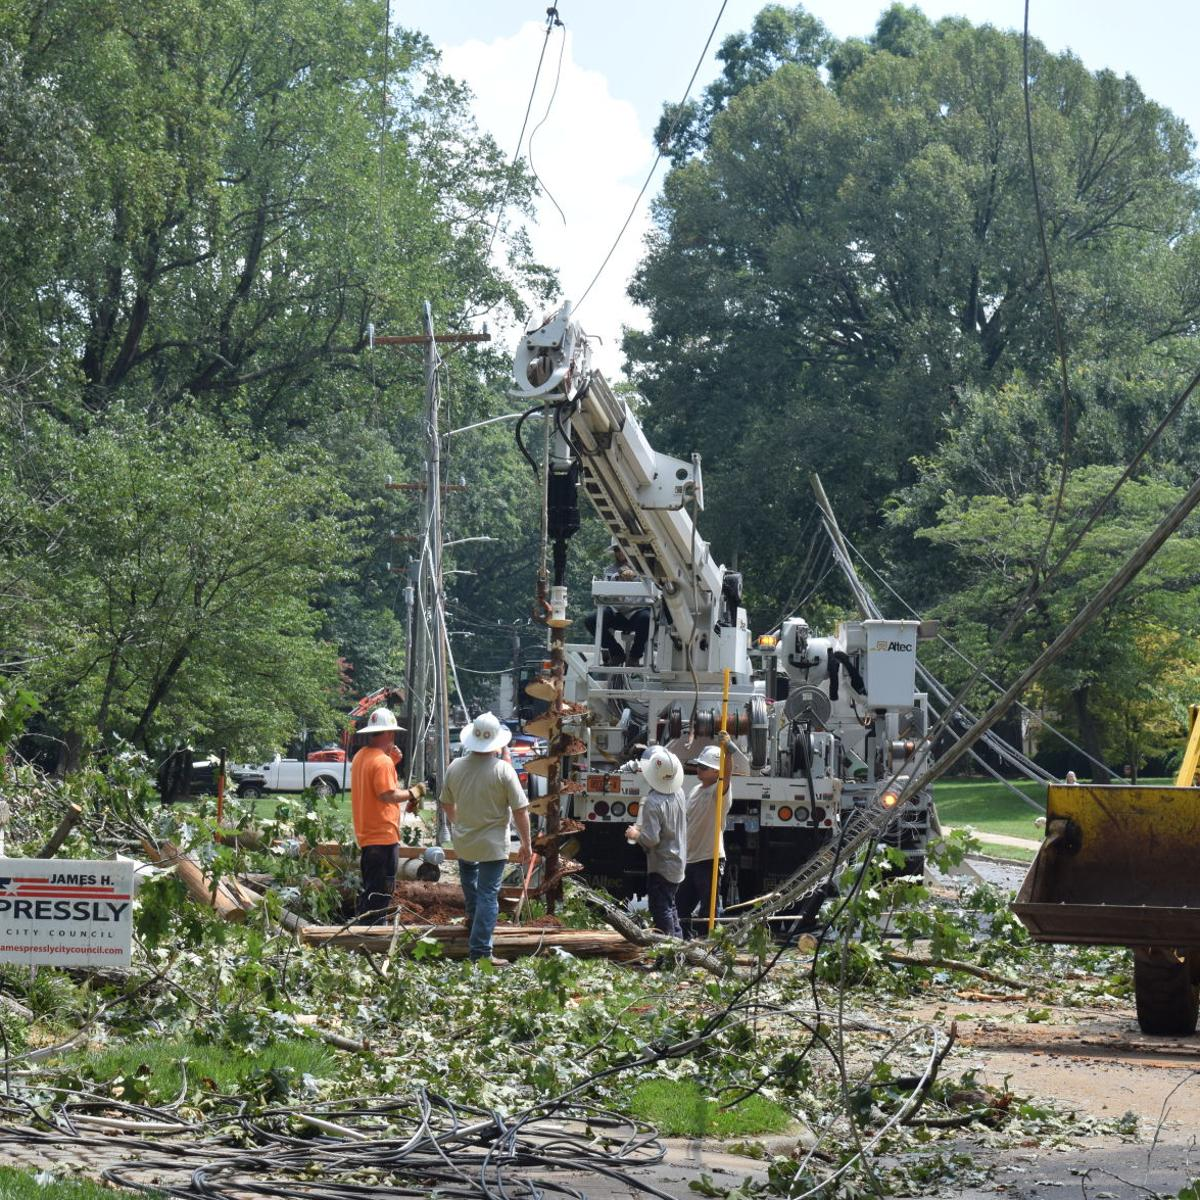 Powerful storm leaves damage, outages in its wake | Local